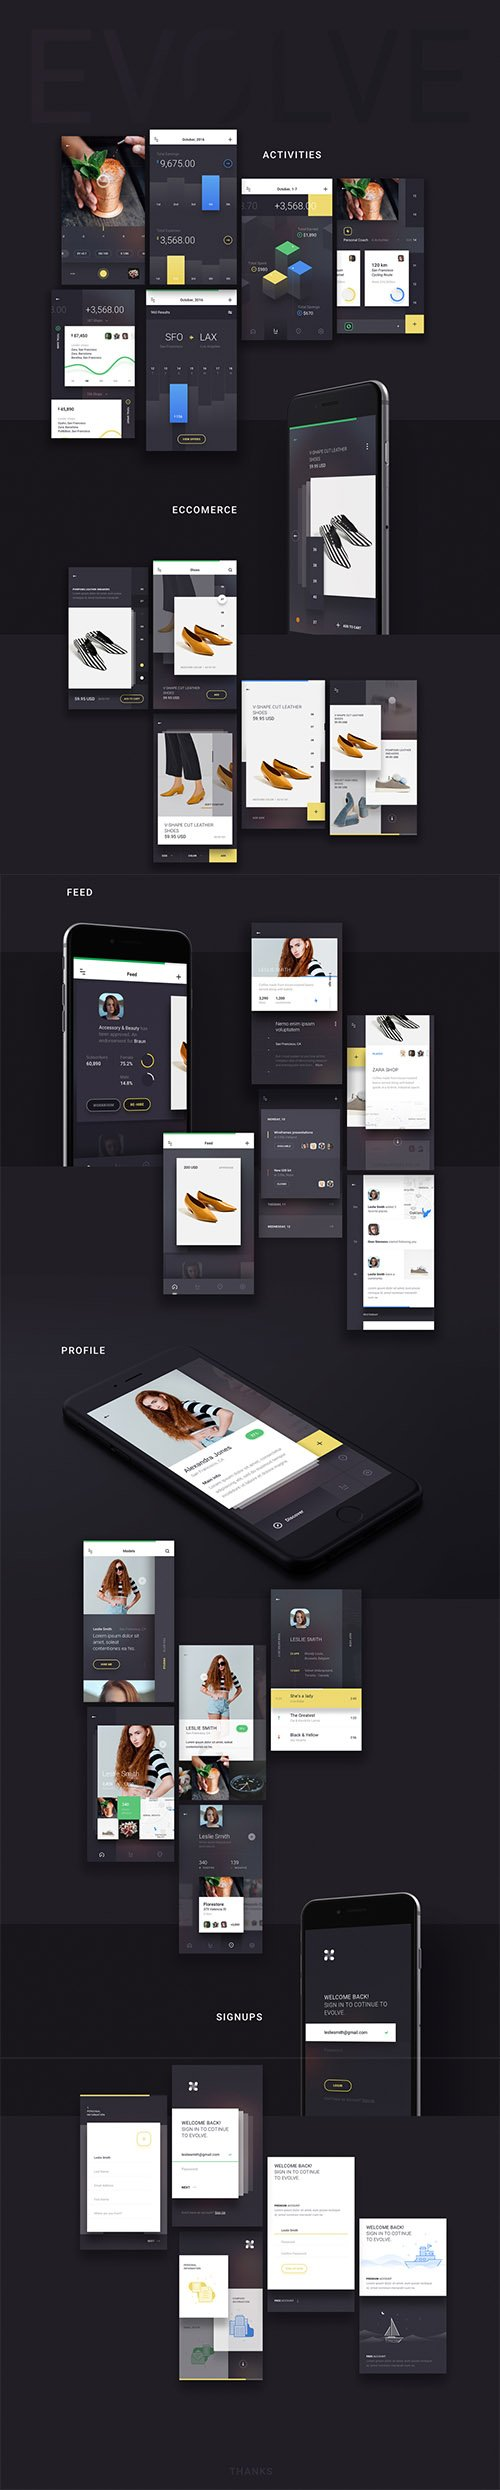 EVOLVE - The ultimate step in iOS mobile UI kit evolution